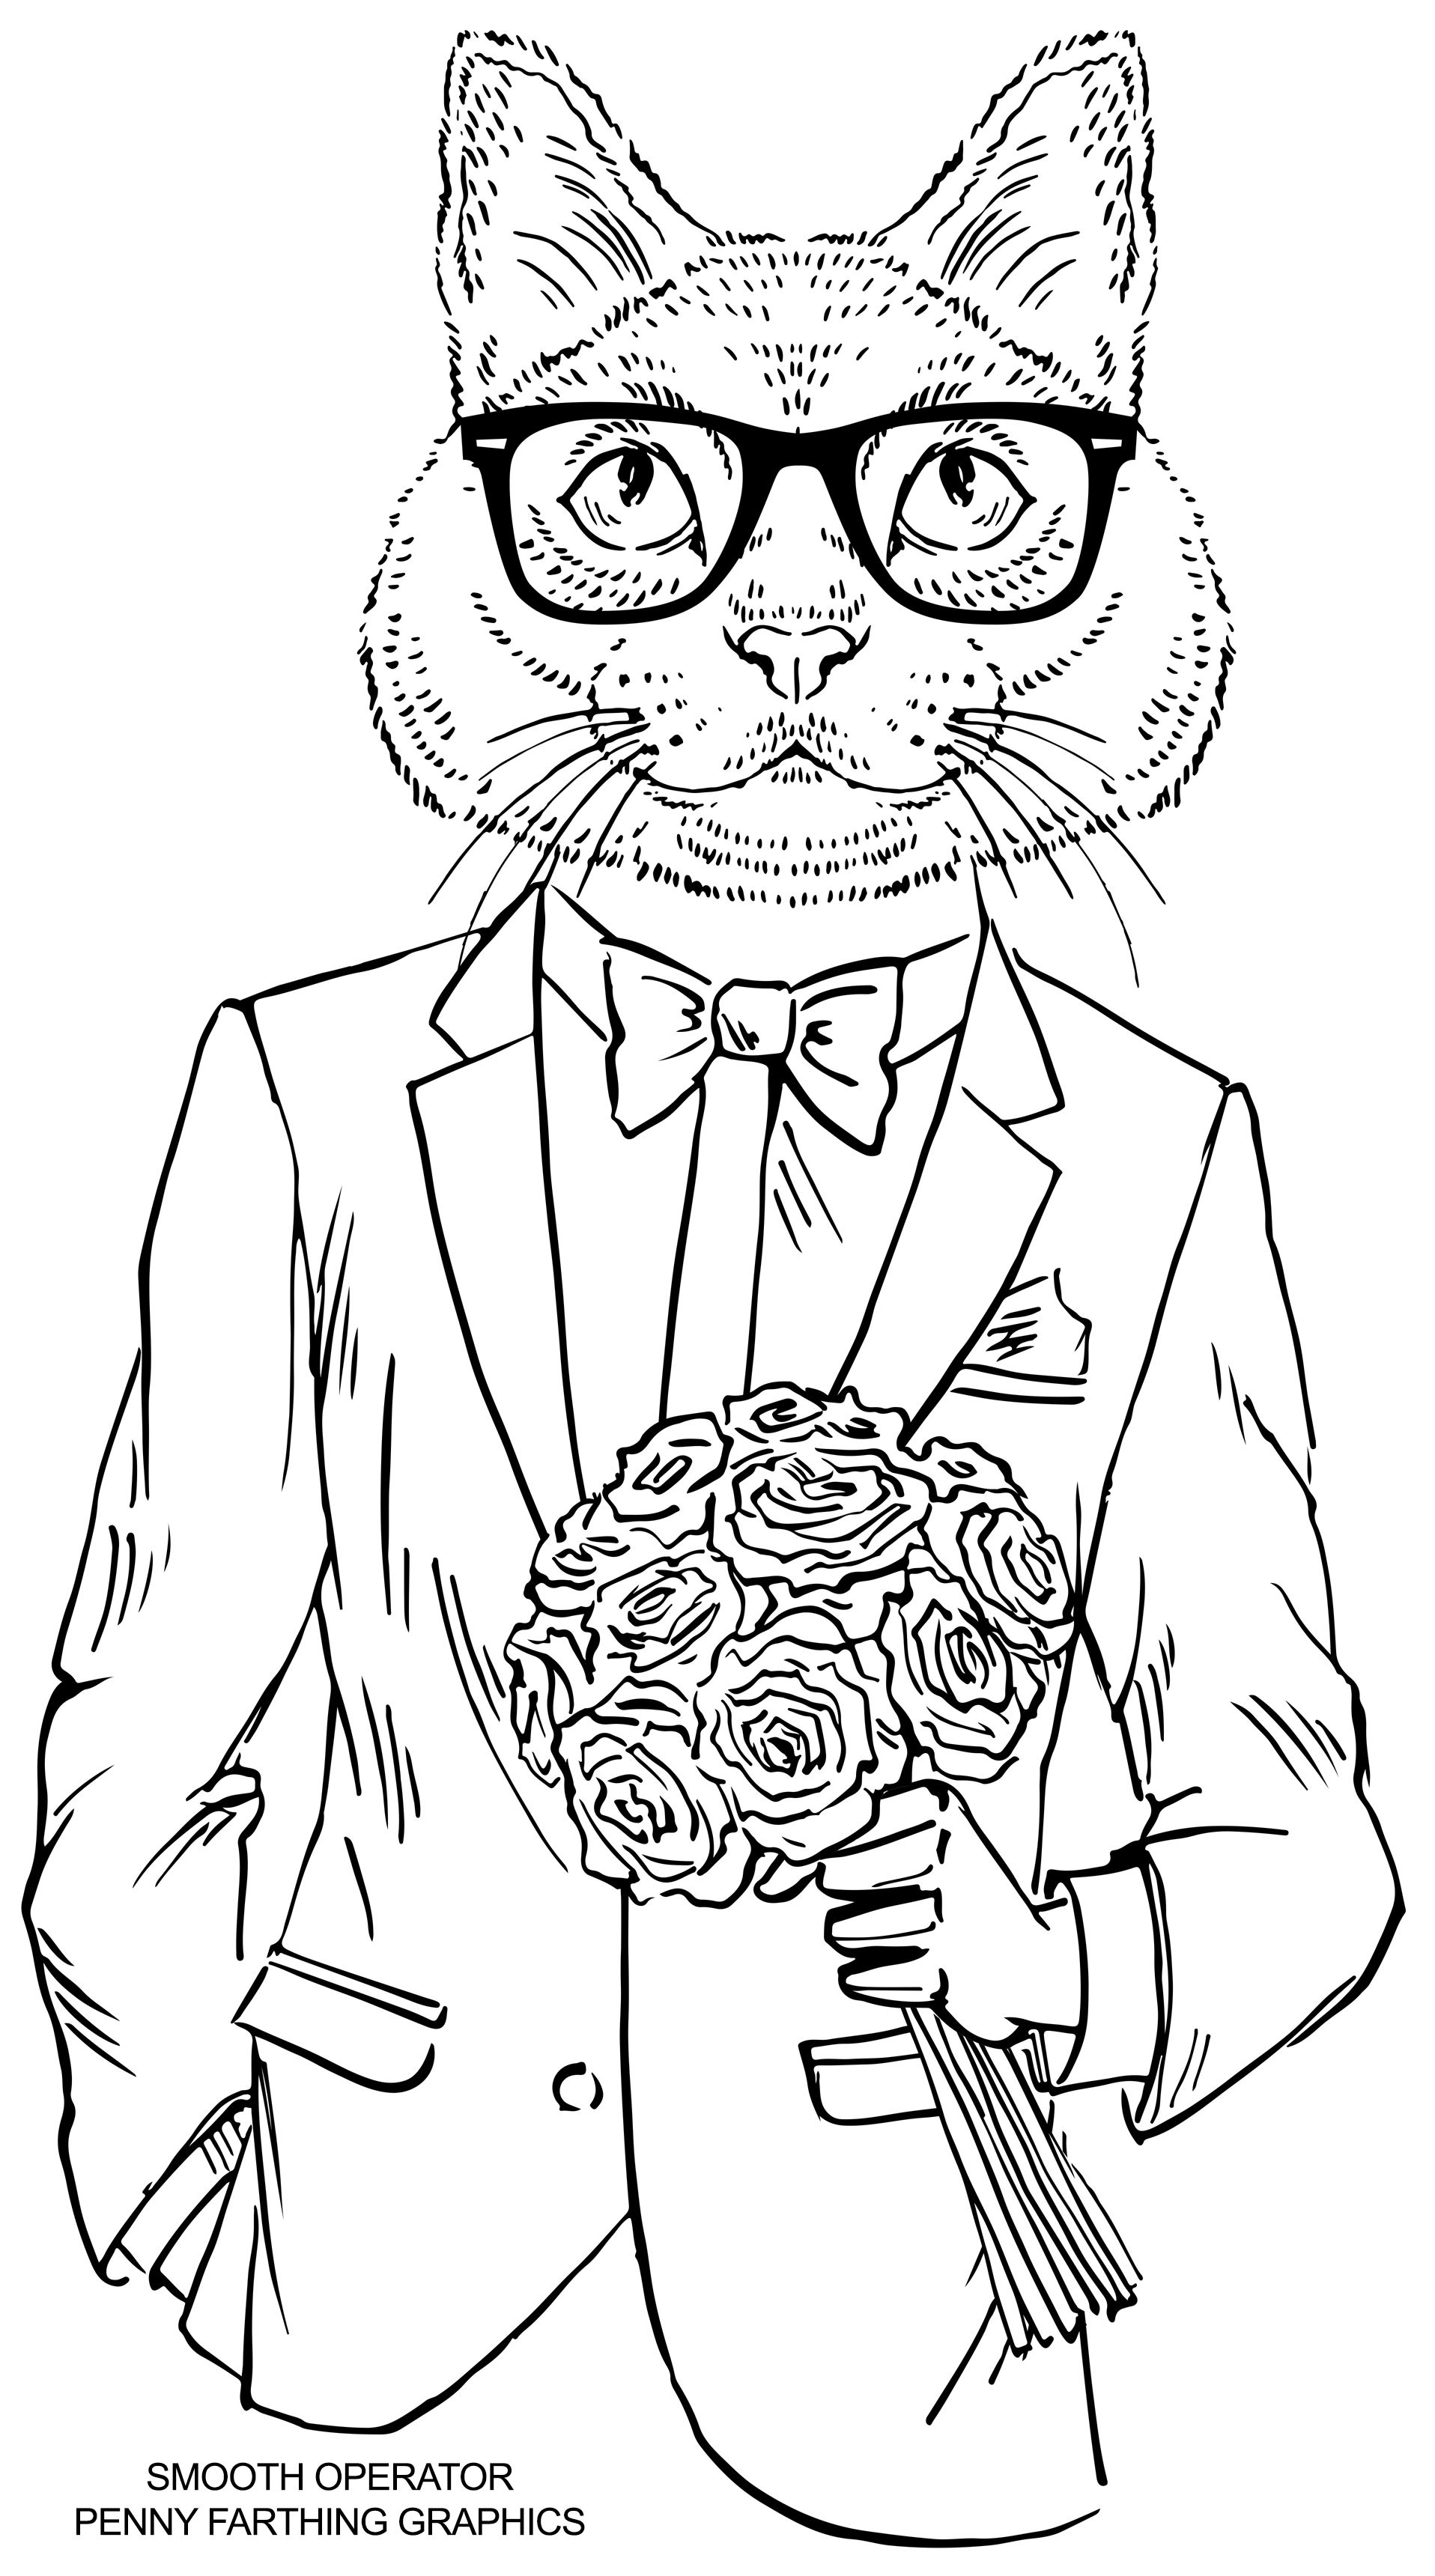 dapper animals coloring book cat from smooth operator would love to buy these